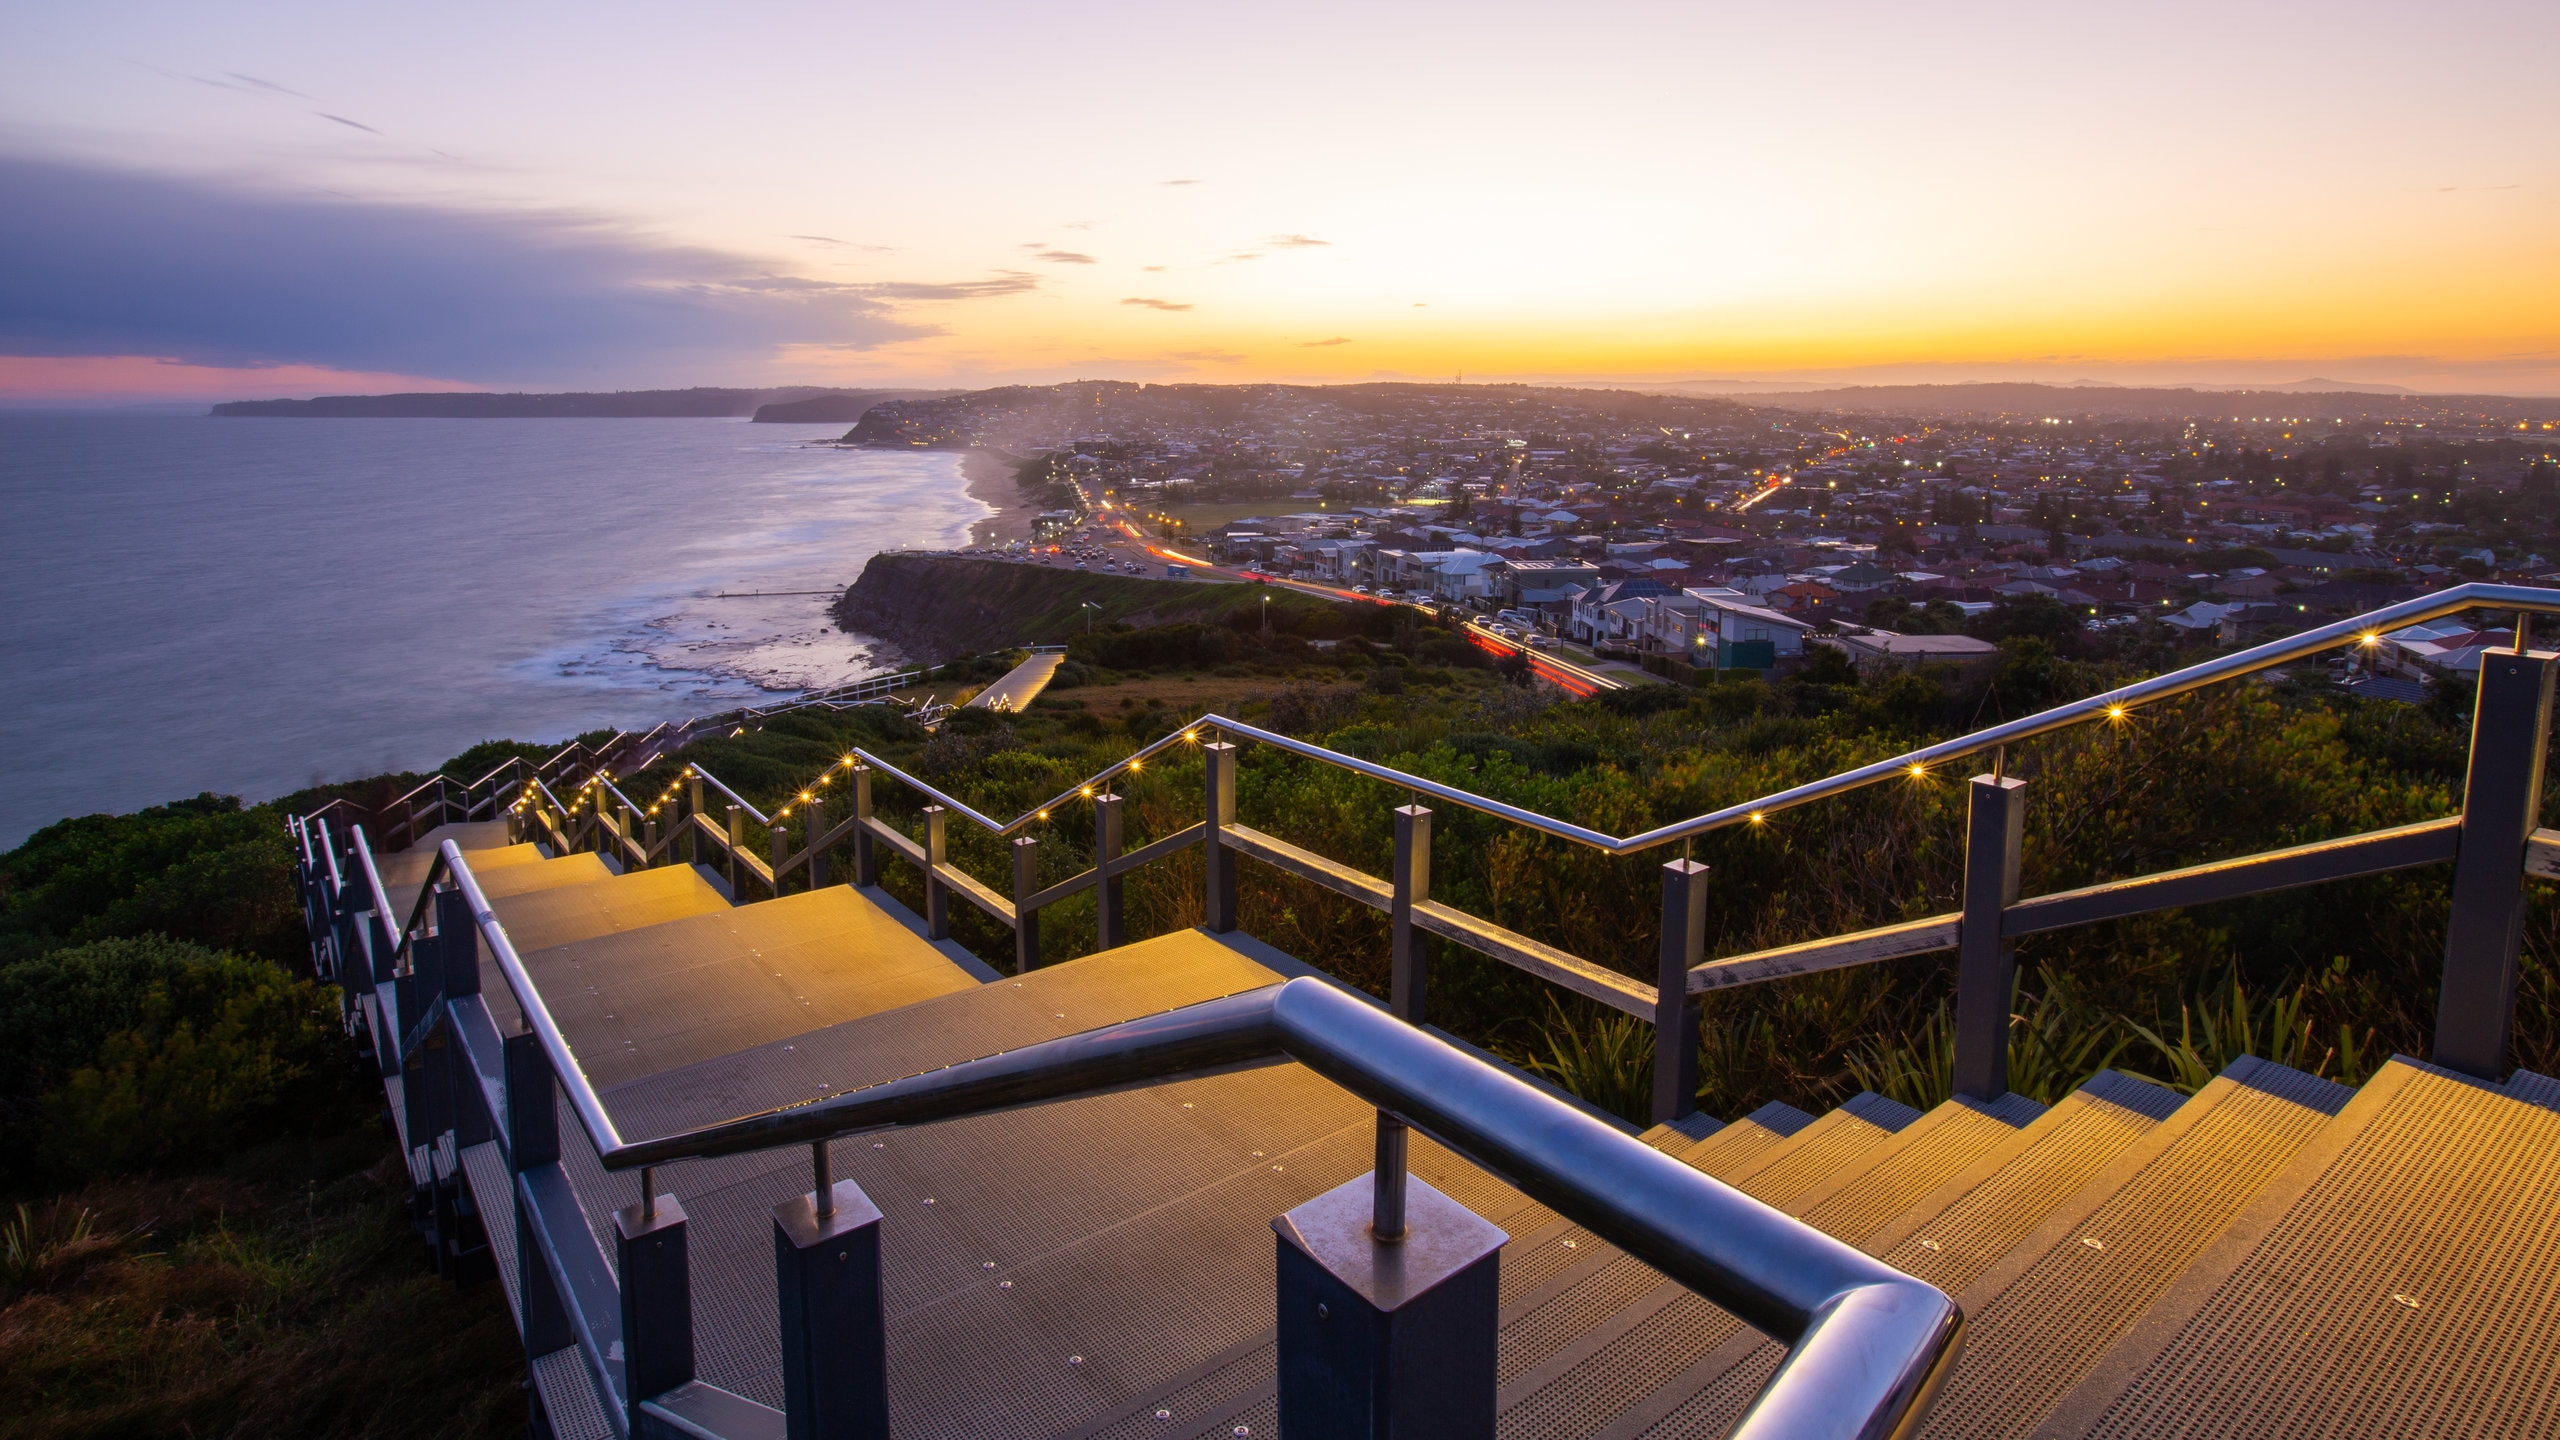 The Hill, Newcastle, New South Wales, Australia